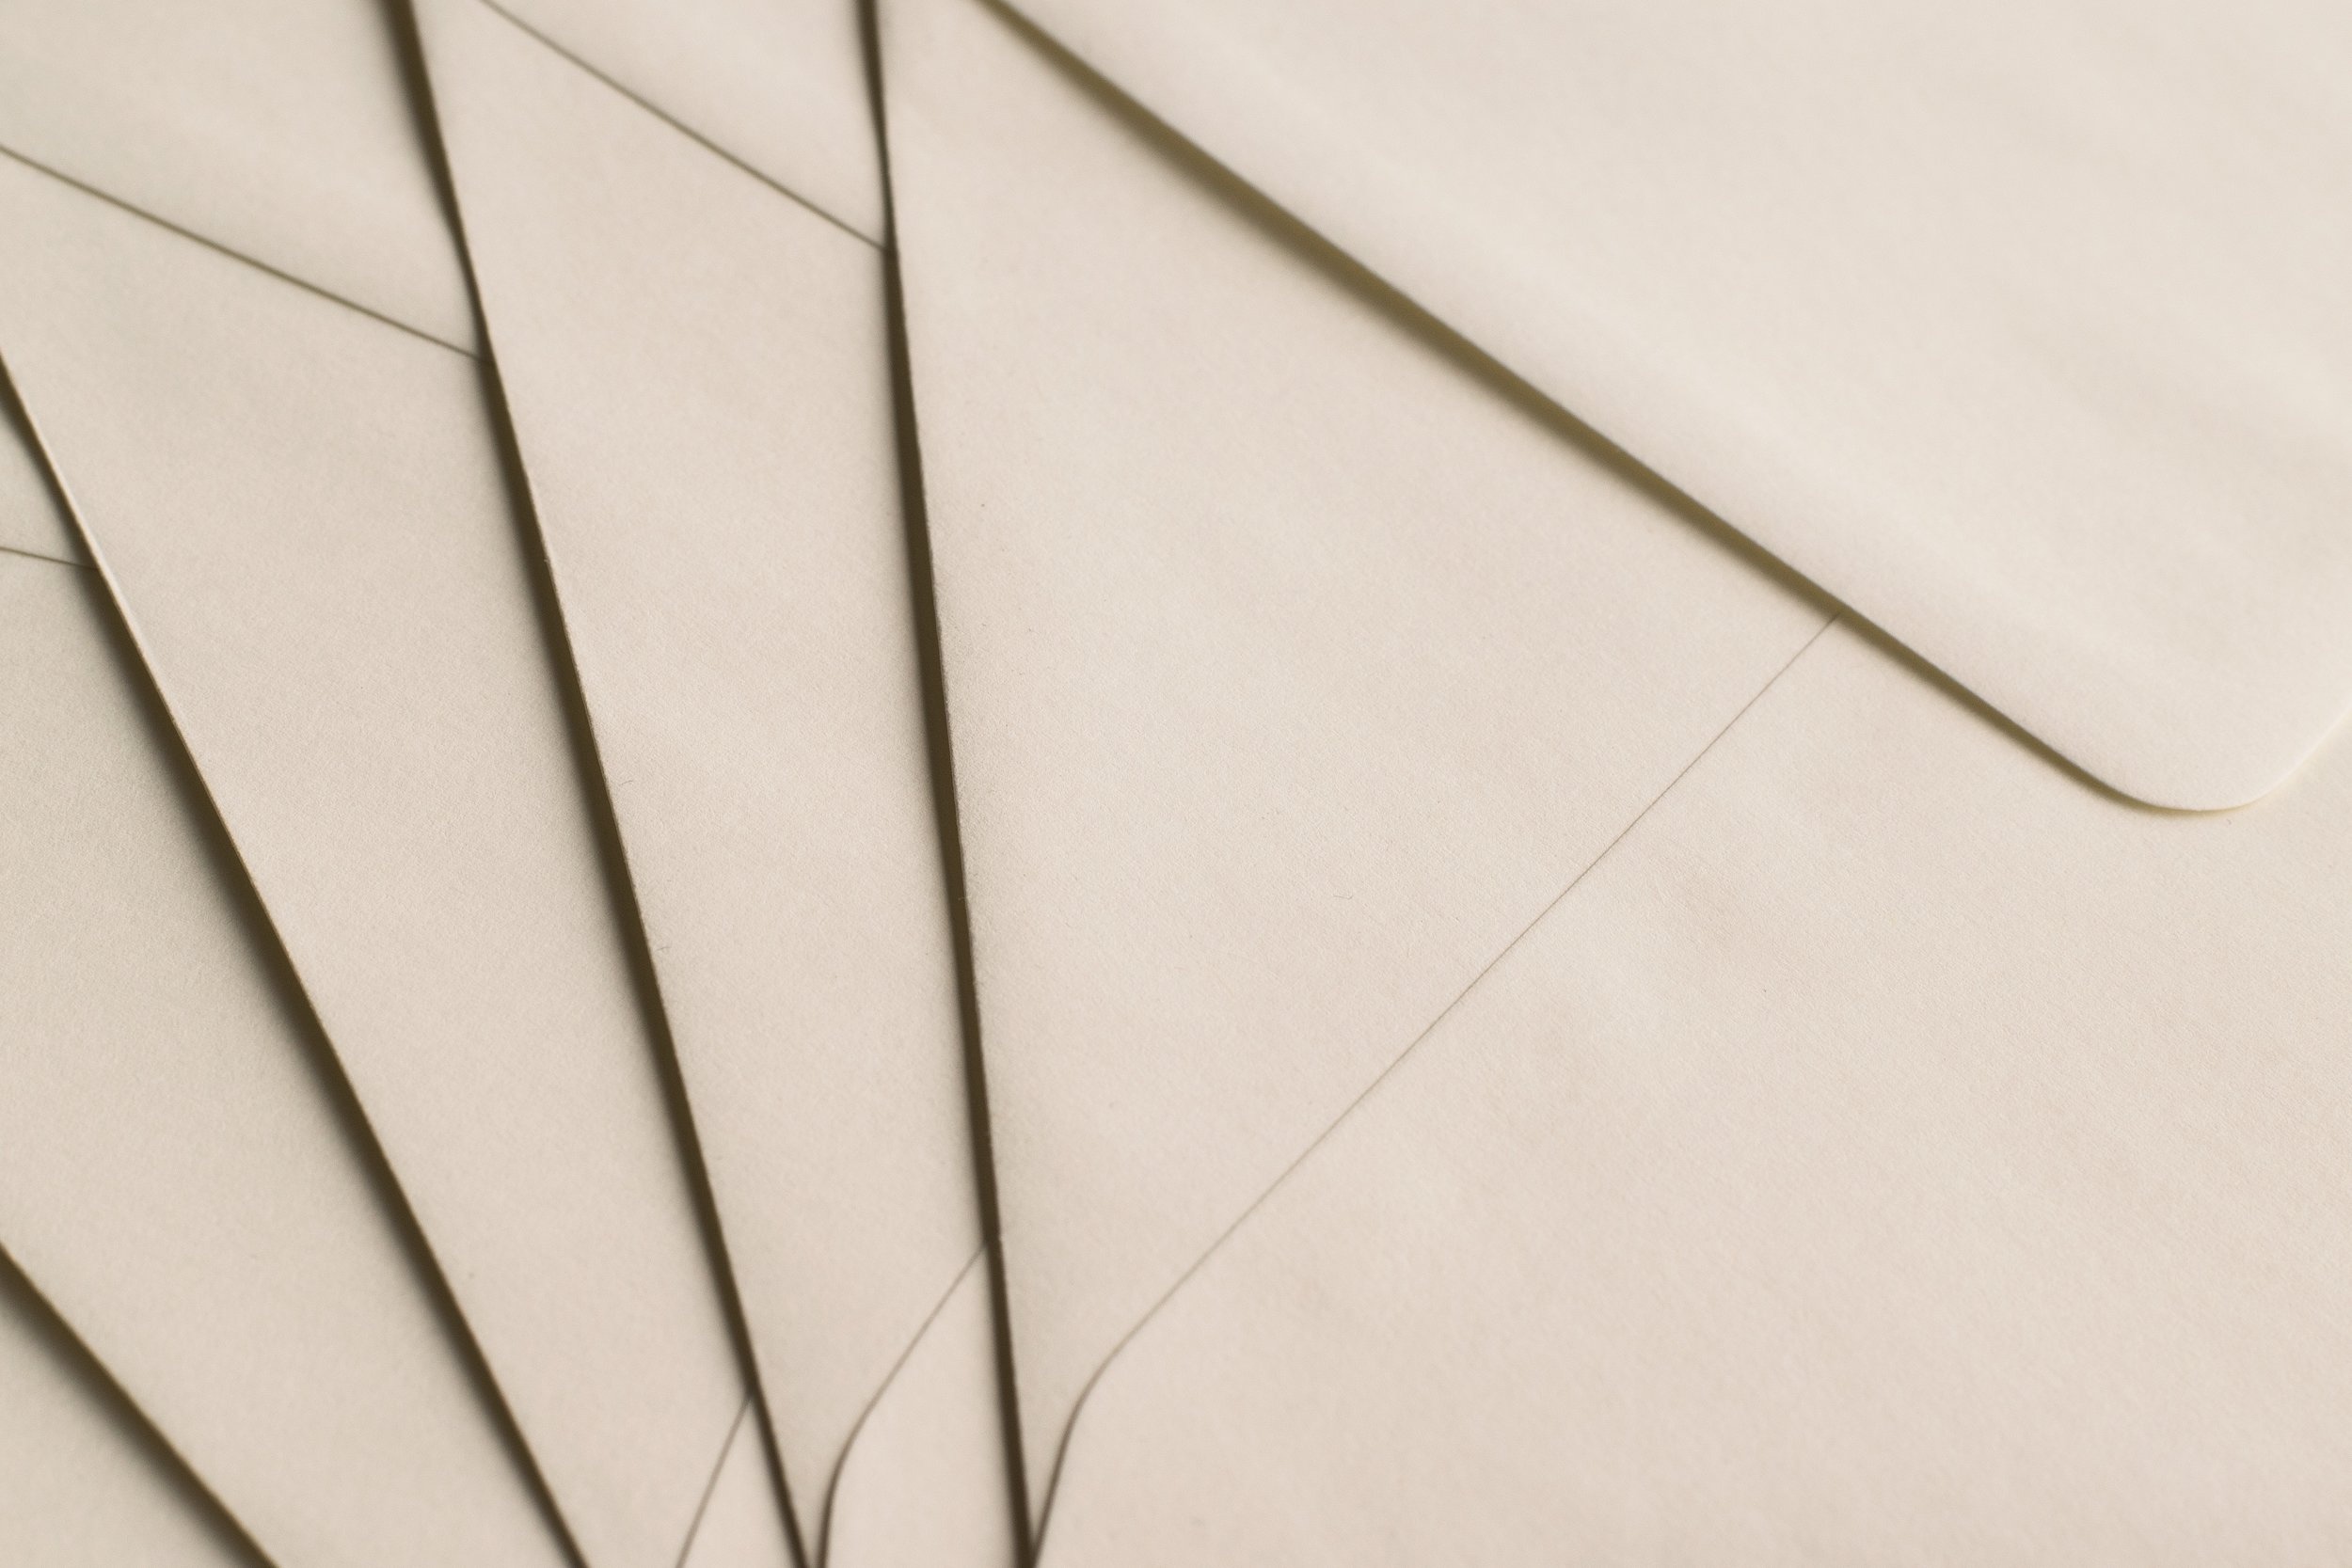 close-up-envelopes-paper-190295.jpg